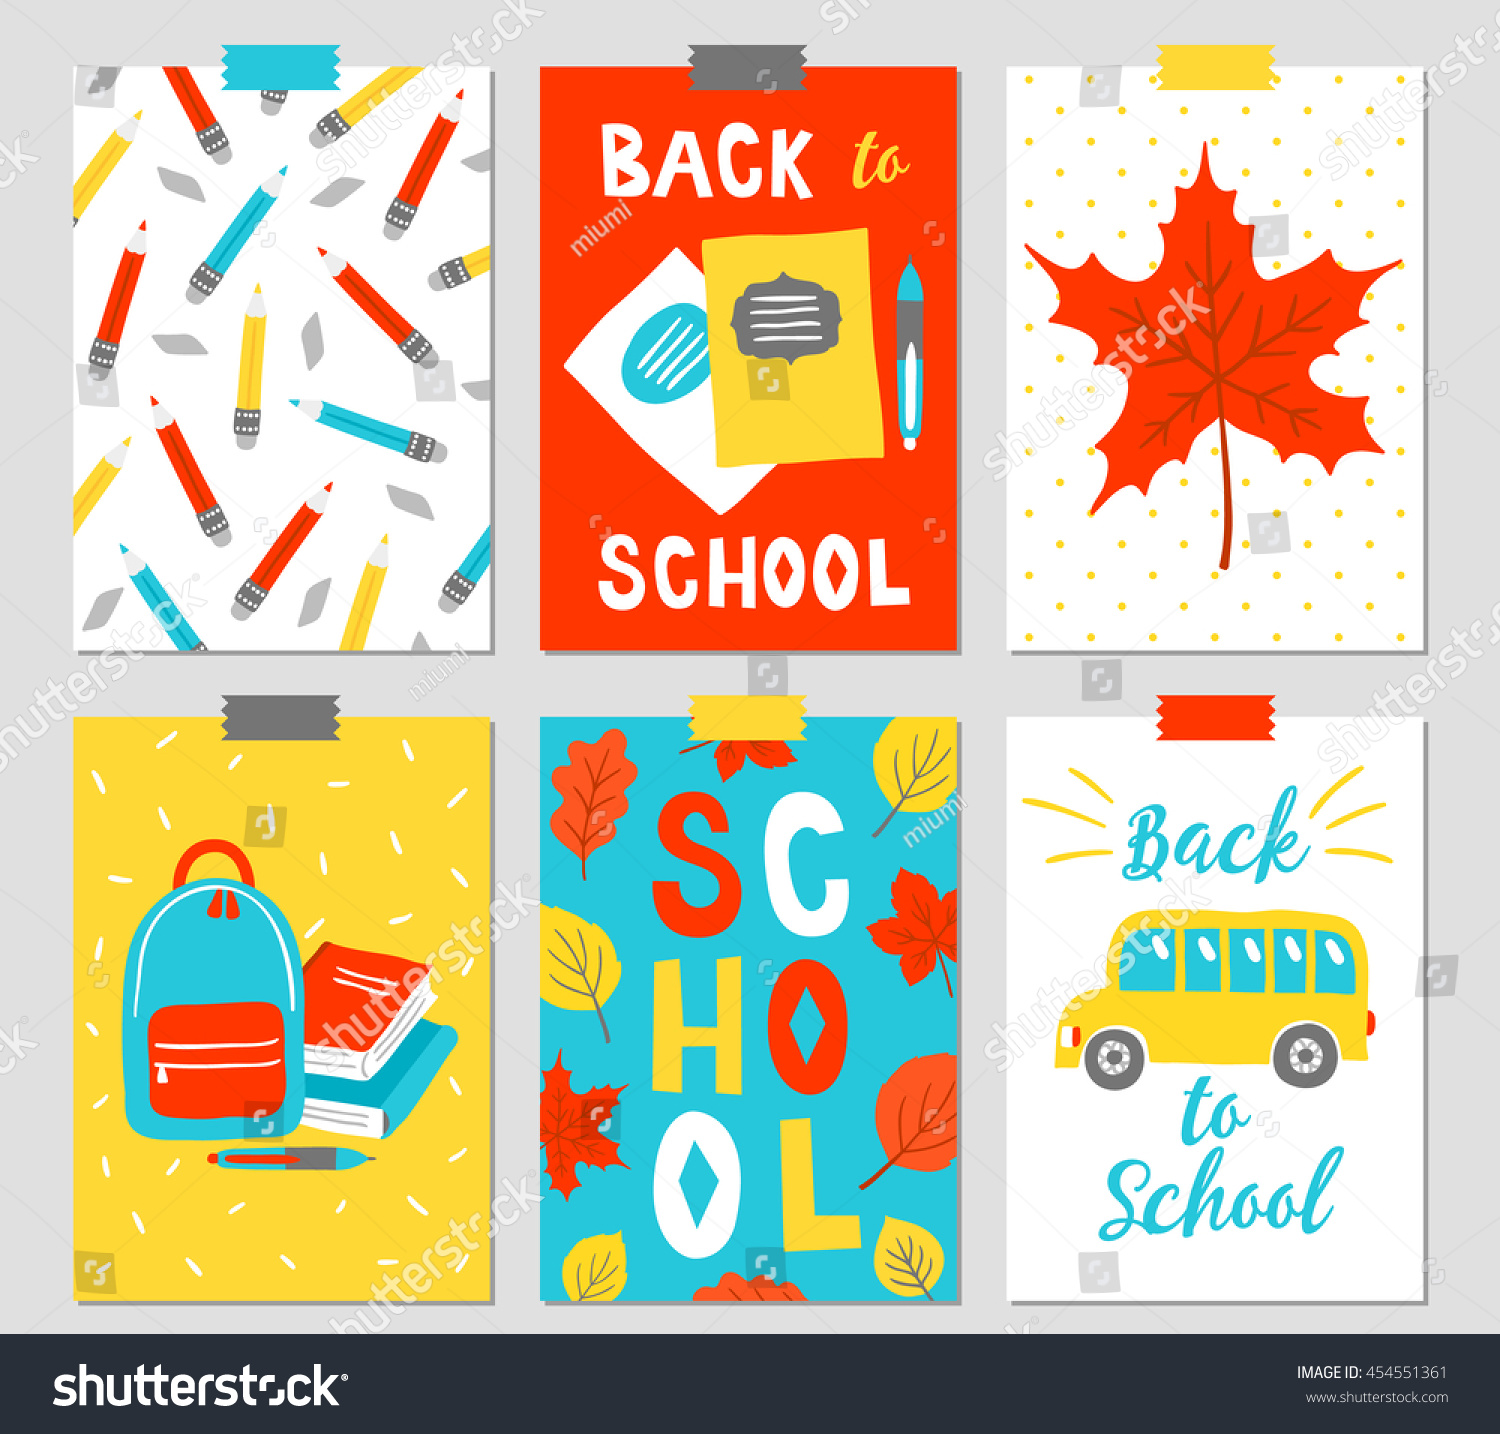 Set six educational greeting cards eraser stock vector 454551361 set six educational greeting cards eraser stock vector 454551361 shutterstock kristyandbryce Gallery